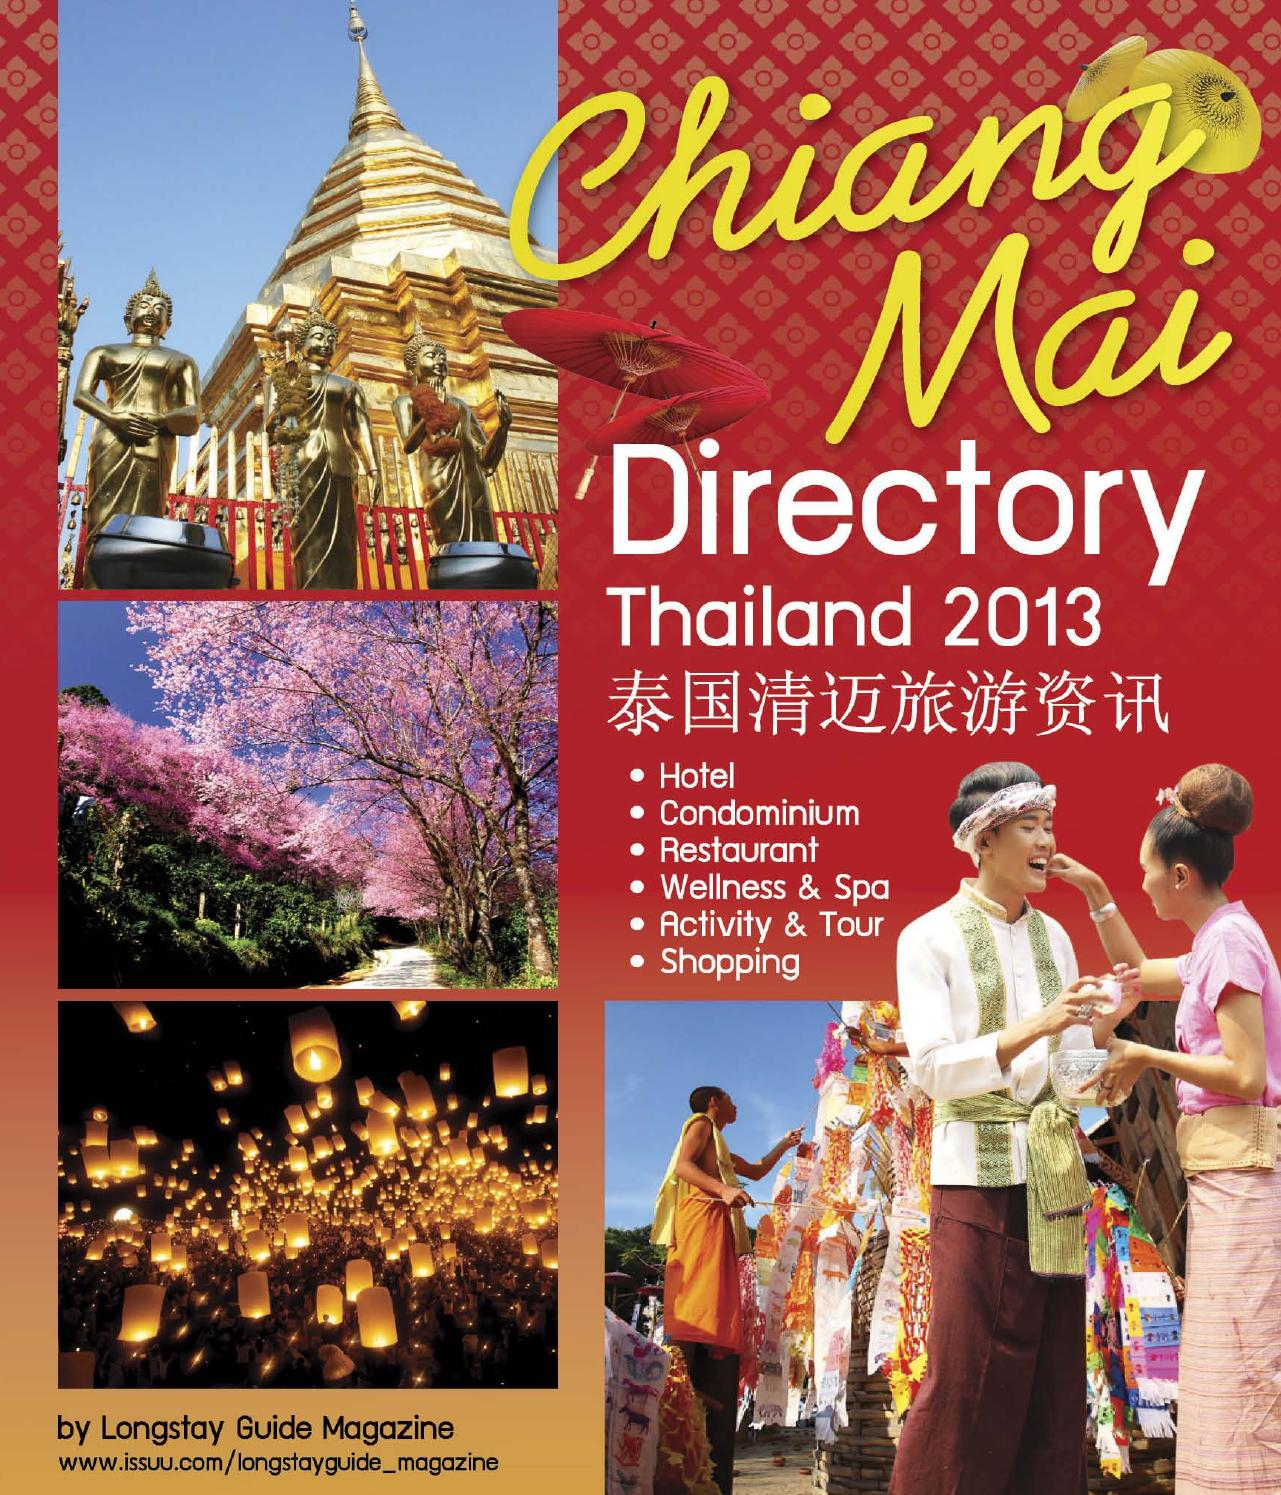 Chiang Mai Directory 2013 By Longstay Guide Magazine